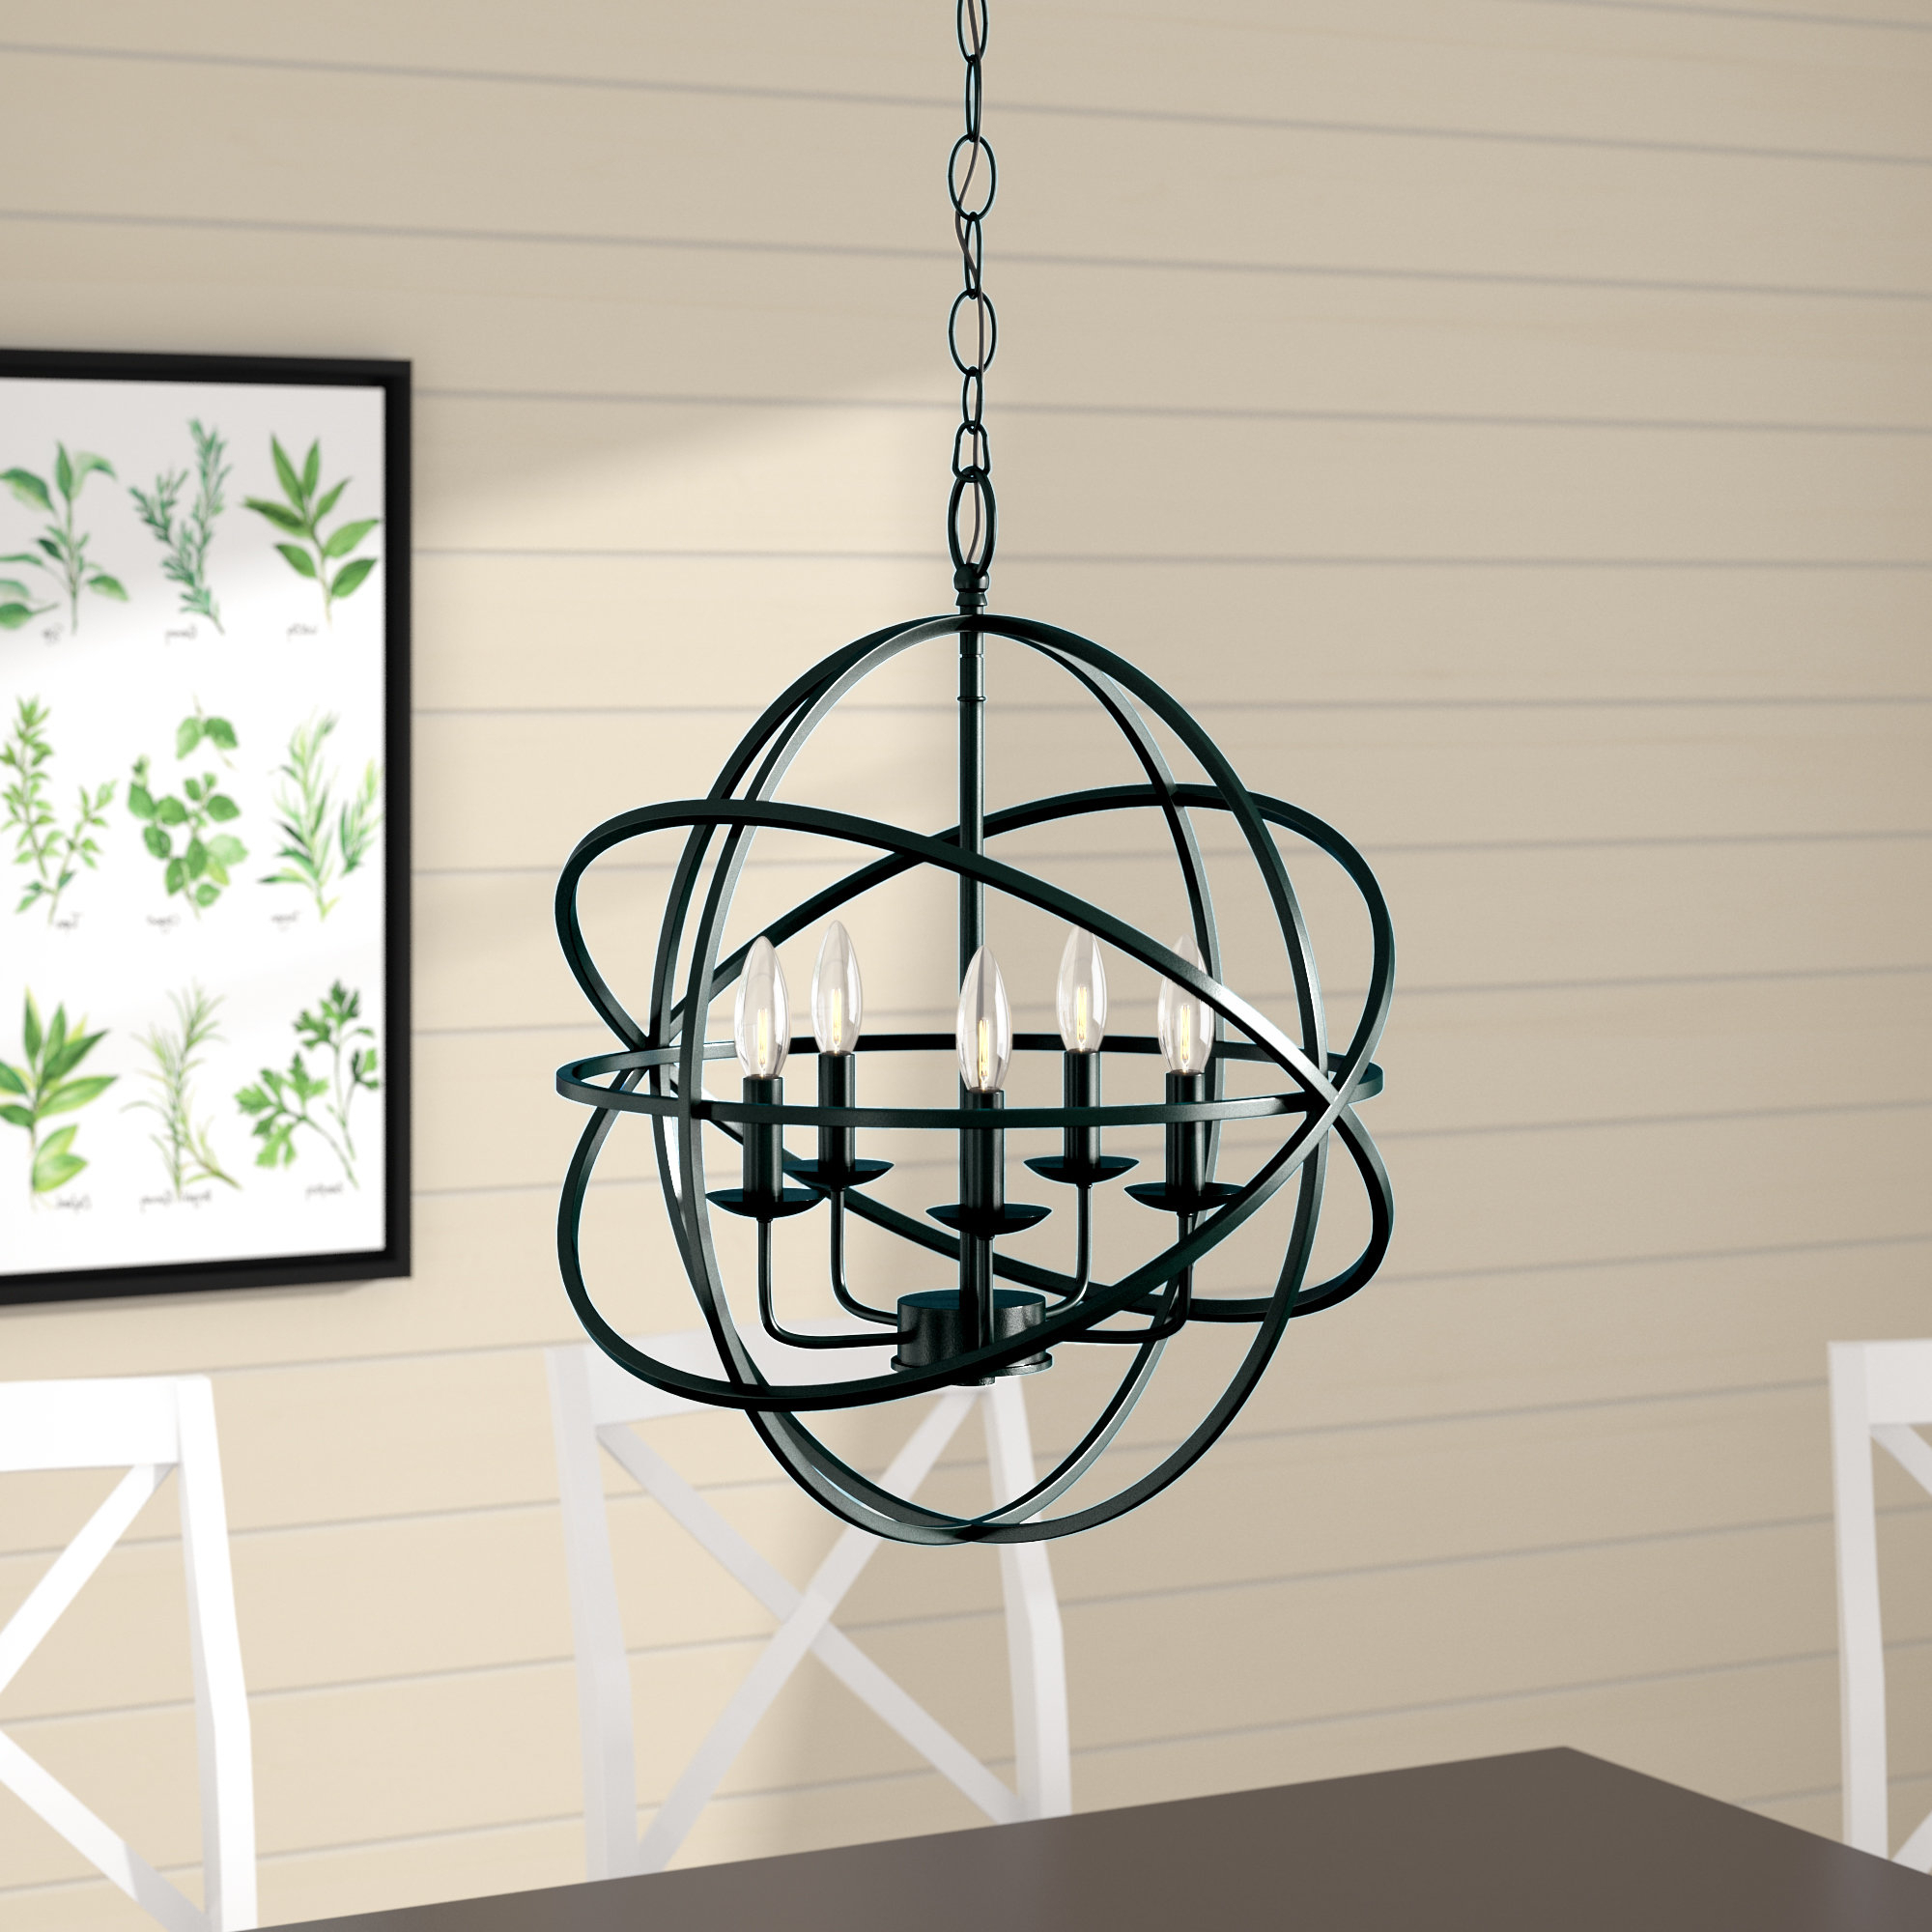 Shipststour 3 Light Globe Chandeliers Pertaining To Current Hankinson 5 Light Globe Chandelier (View 22 of 25)